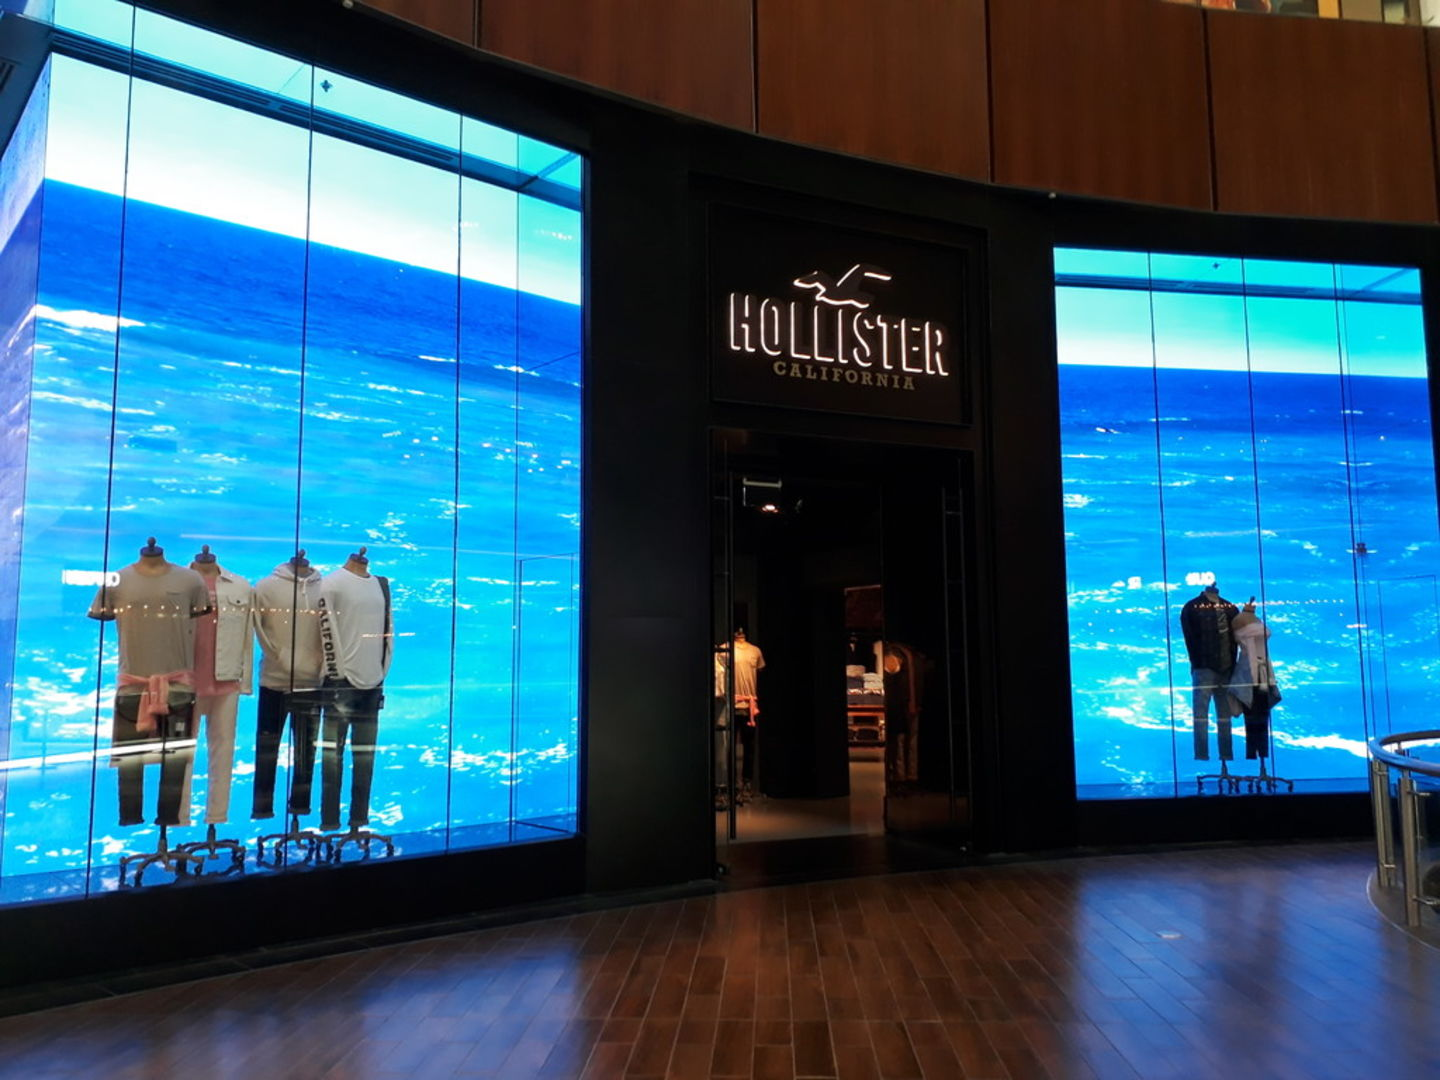 HiDubai-business-hollister-shopping-fashion-accessories-burj-khalifa-dubai-2